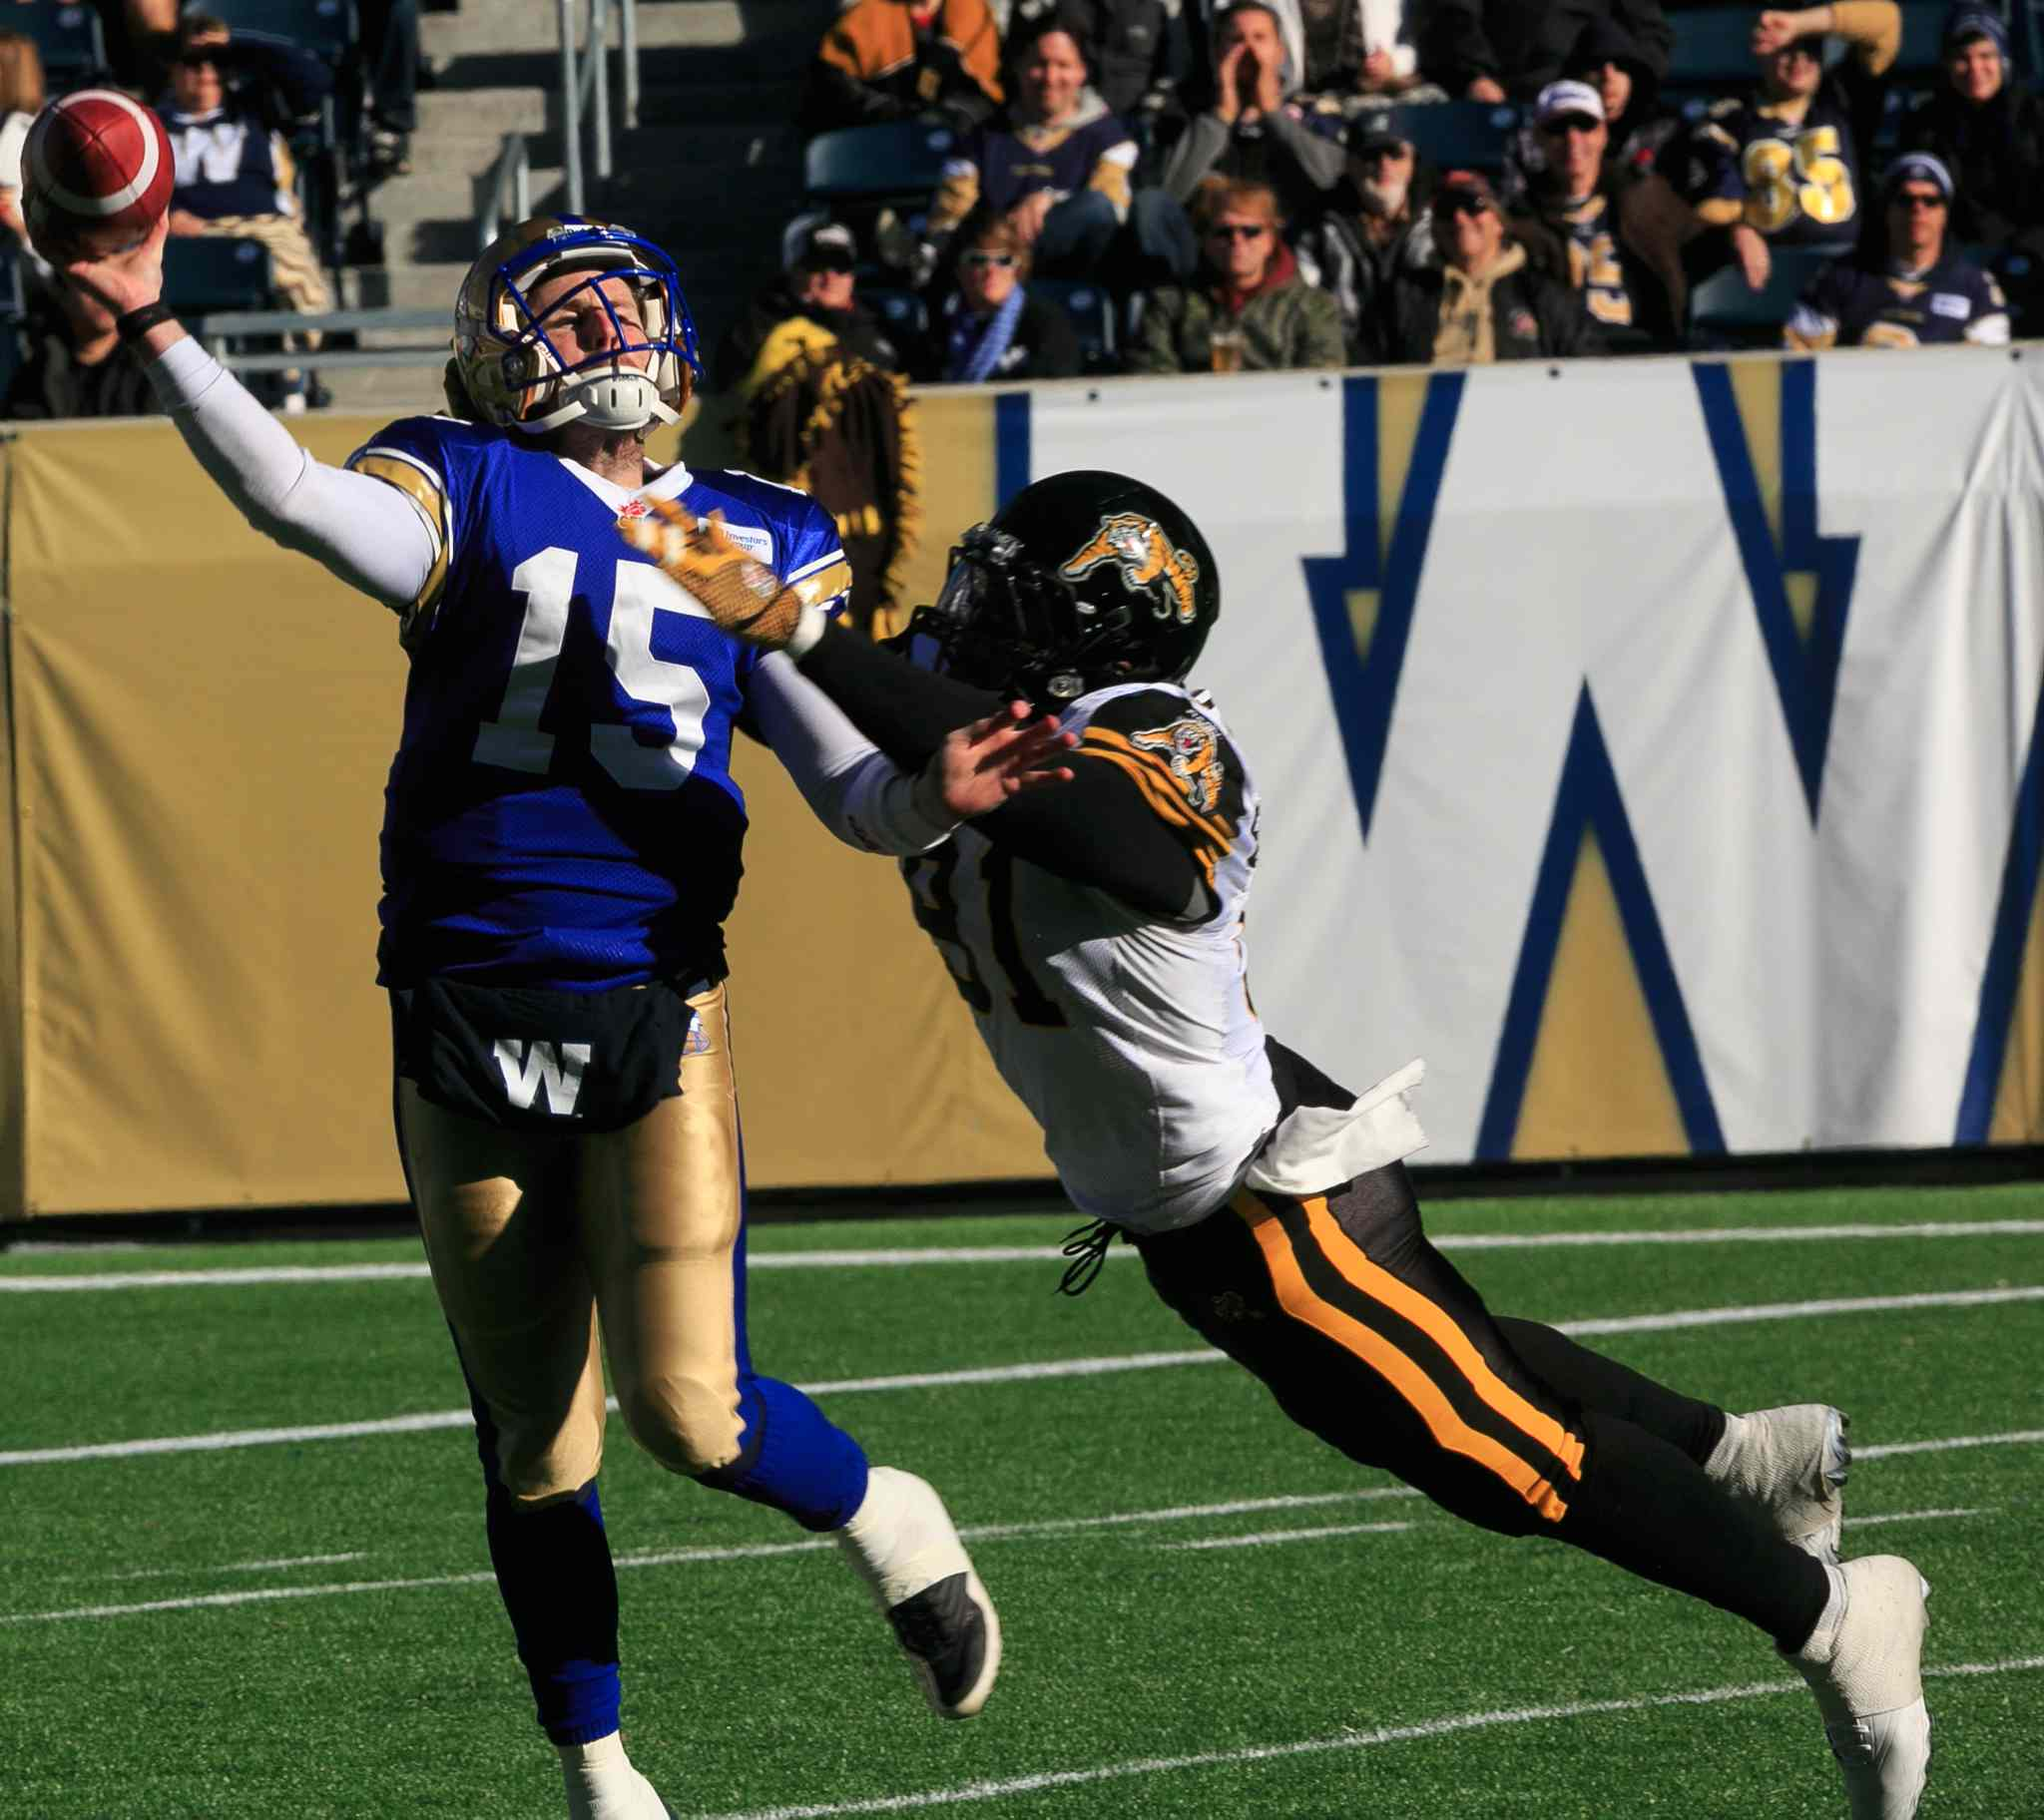 Bombers quarterback Max Hall gets rid of the ball just before he is taken down by Brandon Boudreaux of the Hamilton Tiger-Cats in the first quarter.